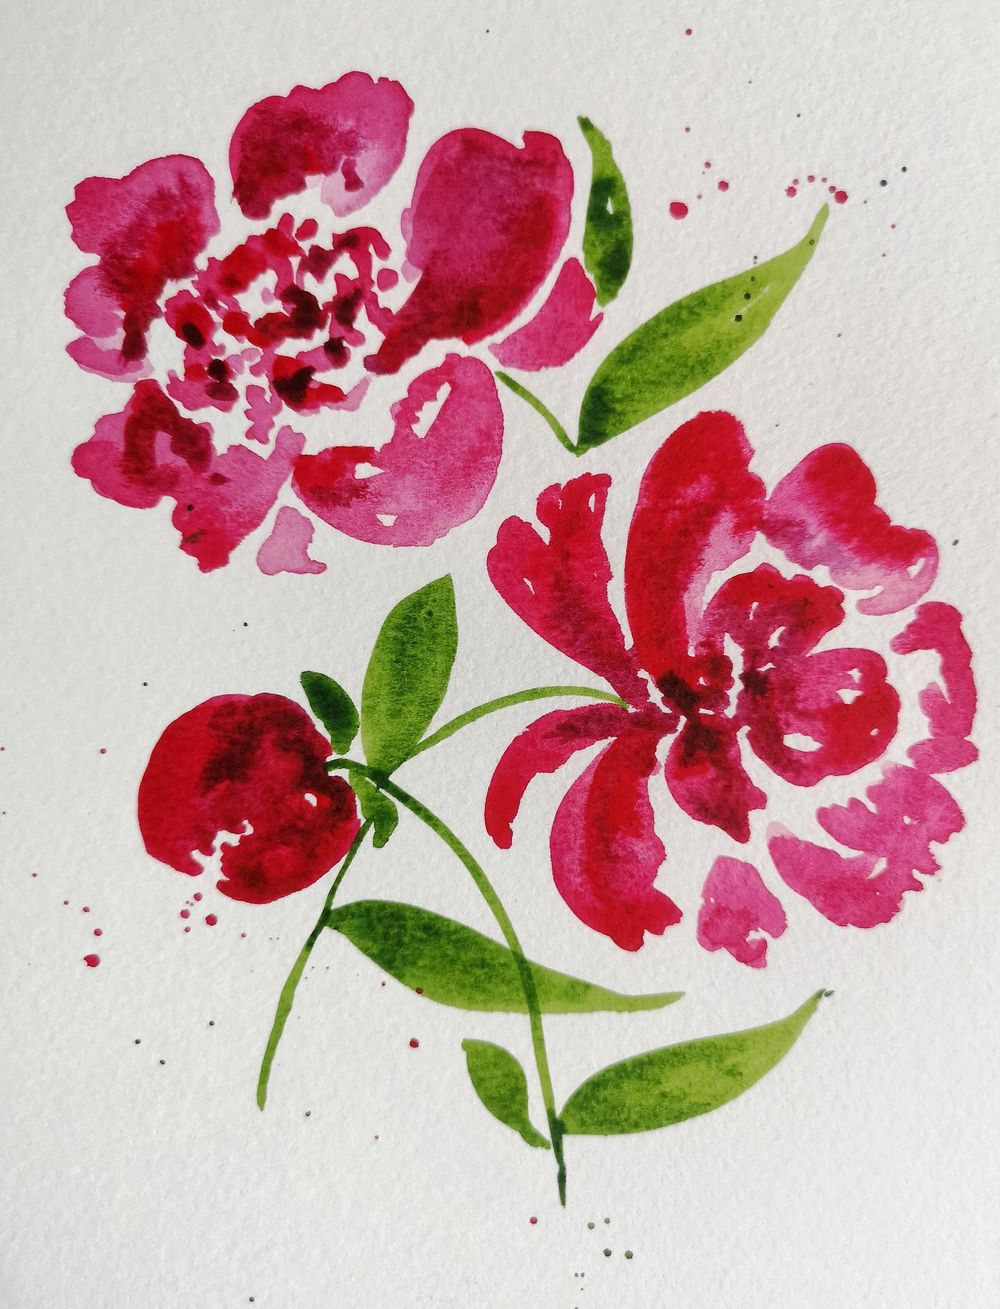 Peonies - image 2 - student project